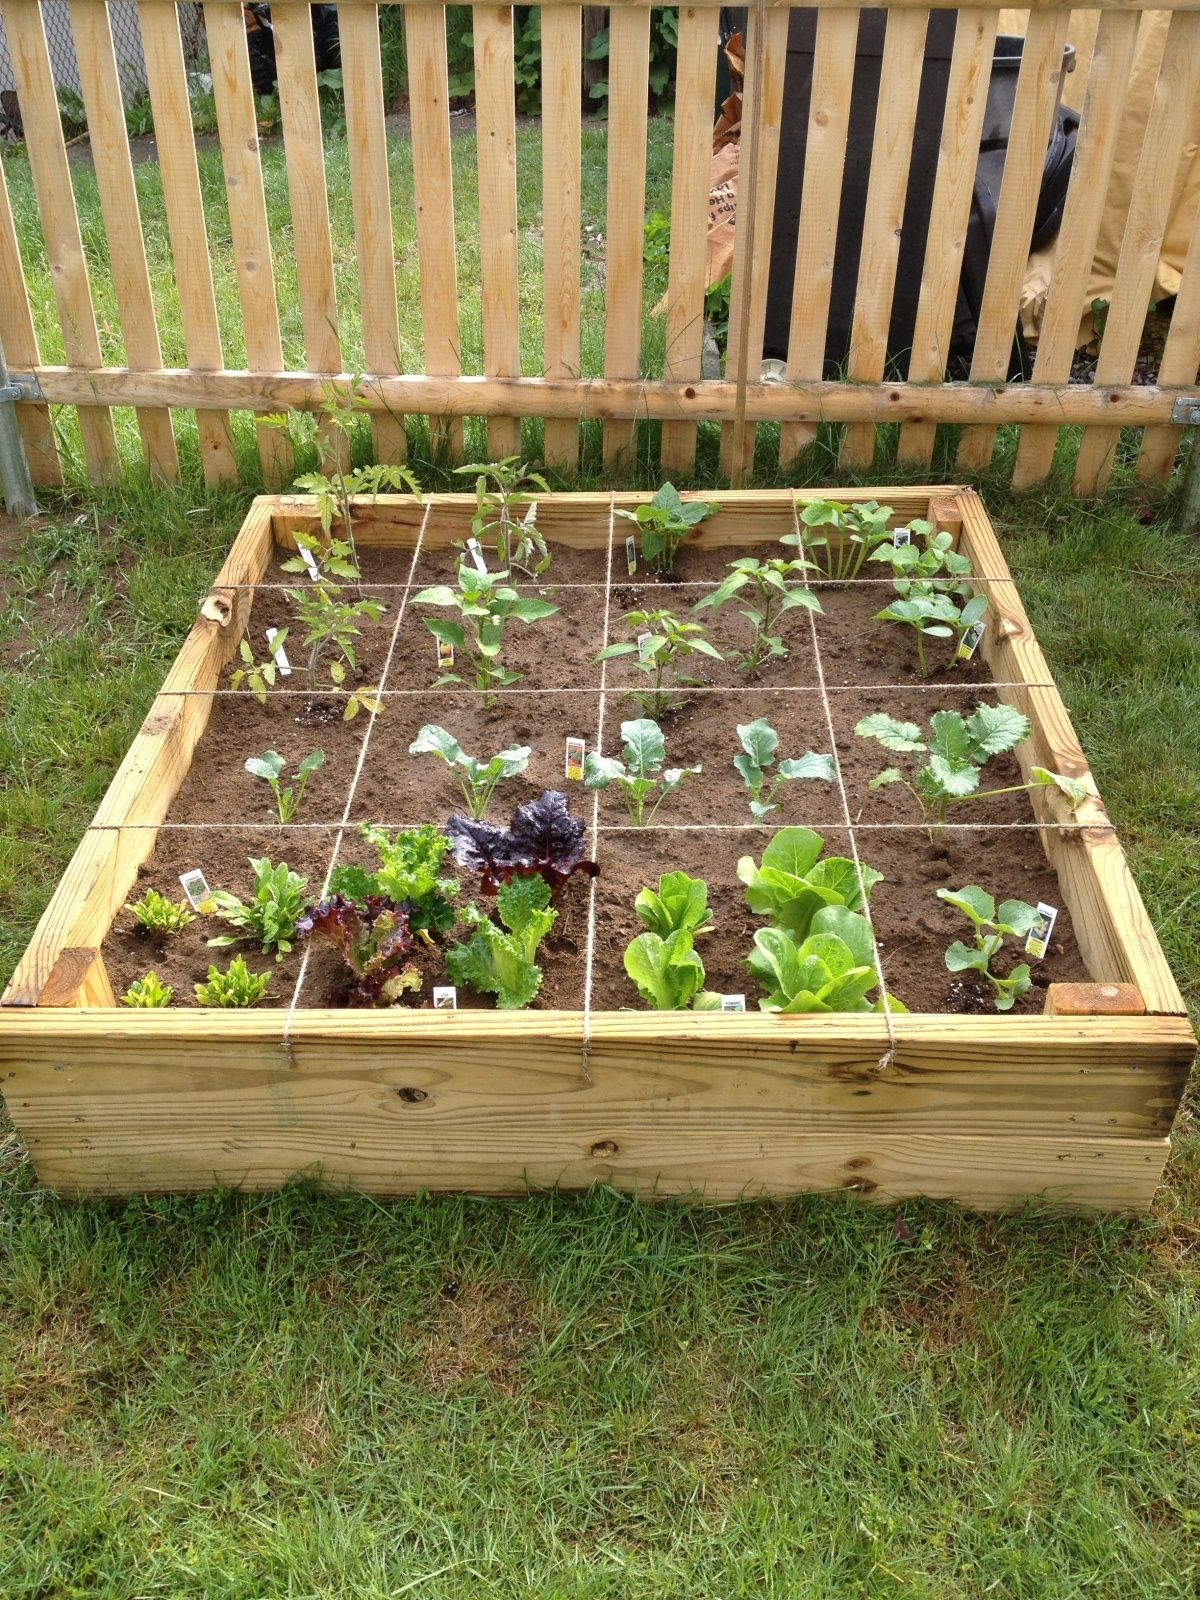 garden like a pro with these simple tips gardening tips